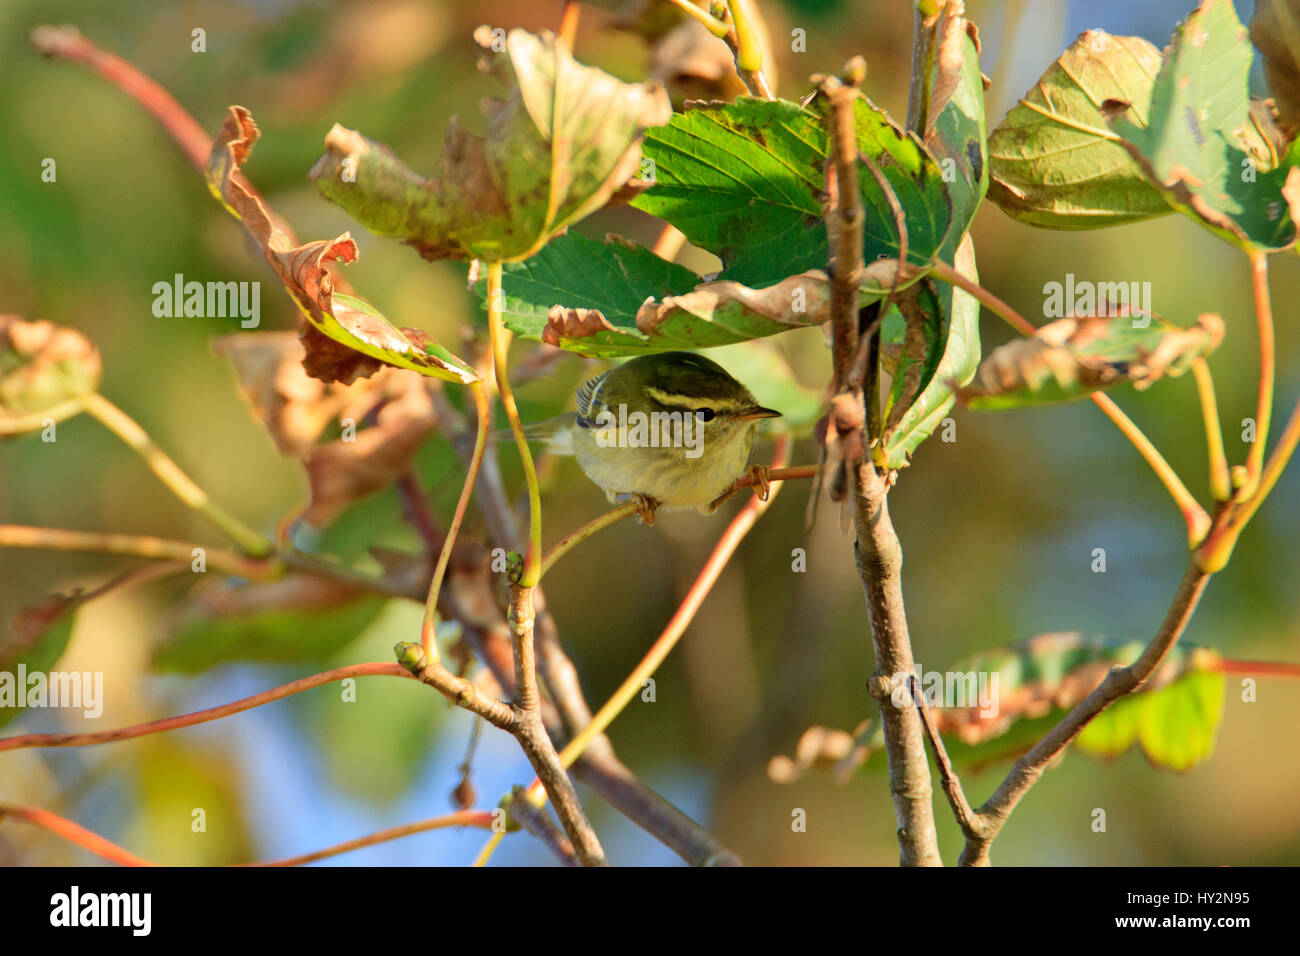 Yellow-browed Warbler (Phylloscopus inornatus) in sycamore leaves. Pouillot à grands sourcils. Gelbbrauen-Laubsänger. Stock Photo